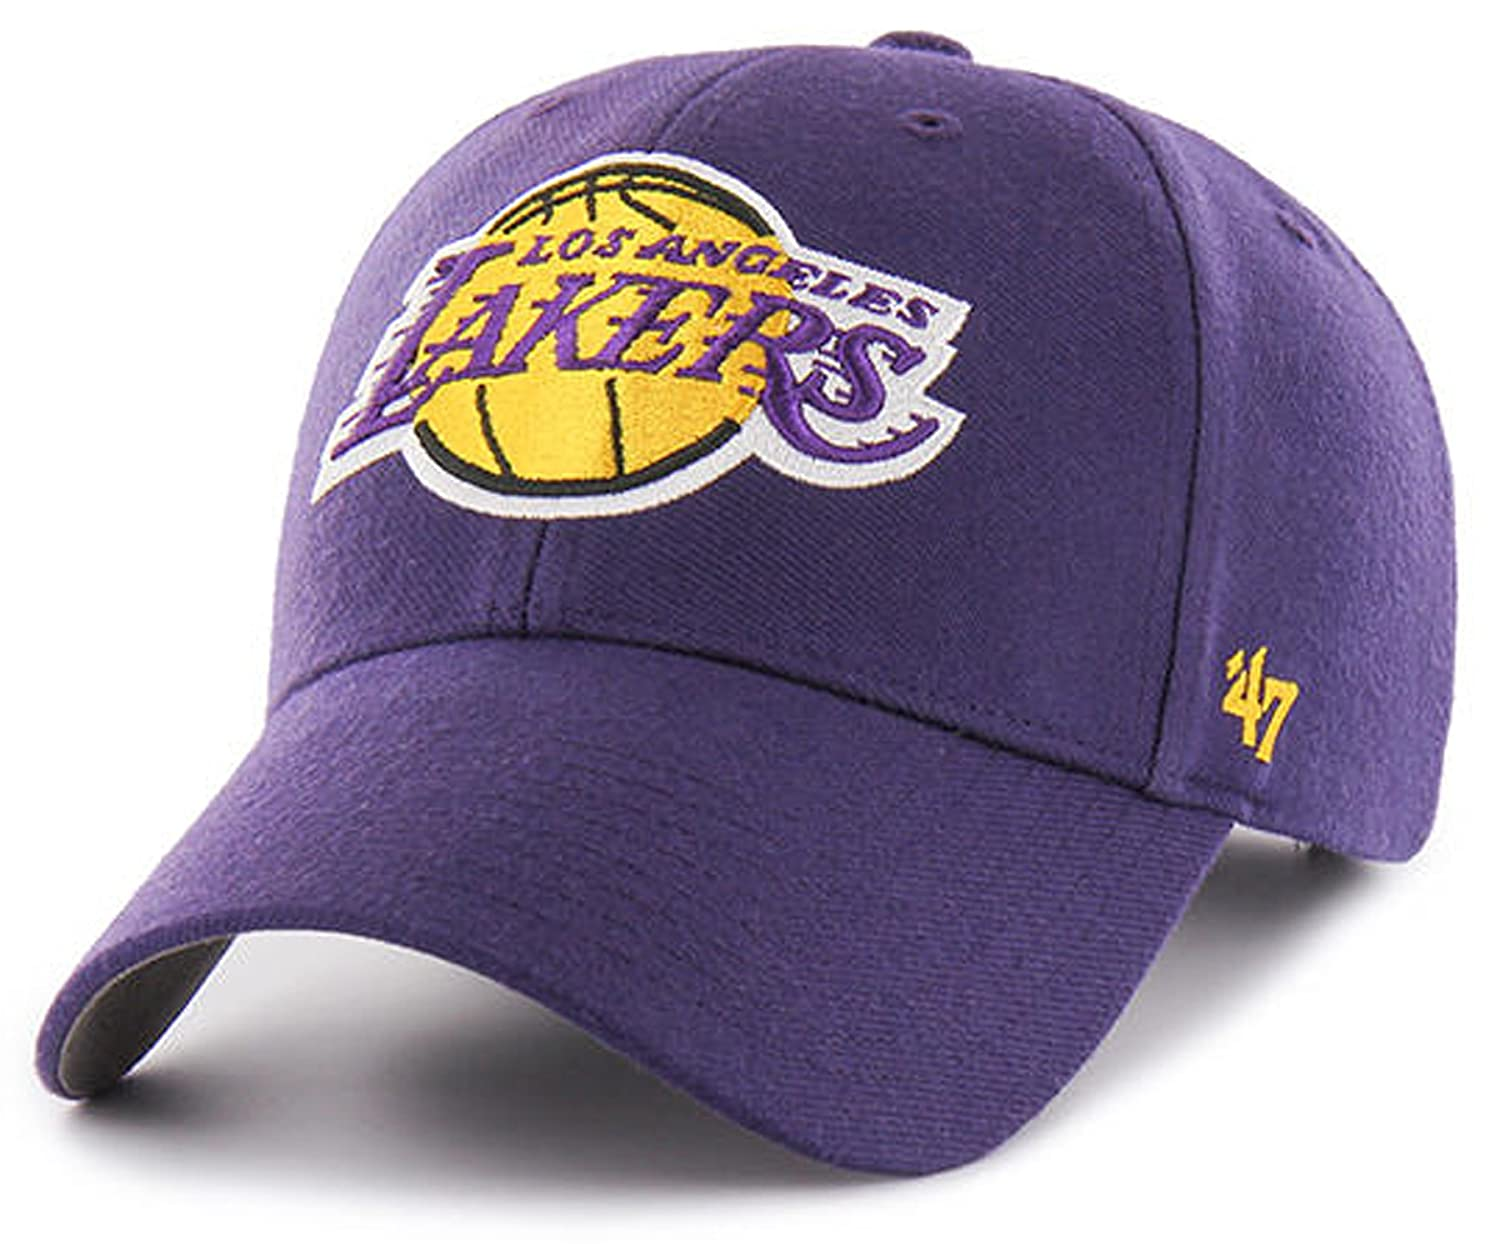 wholesale dealer 3d4bb 63120 canada amazon 47 nba los angeles lakers clean up adjustable hat black one  size purple one